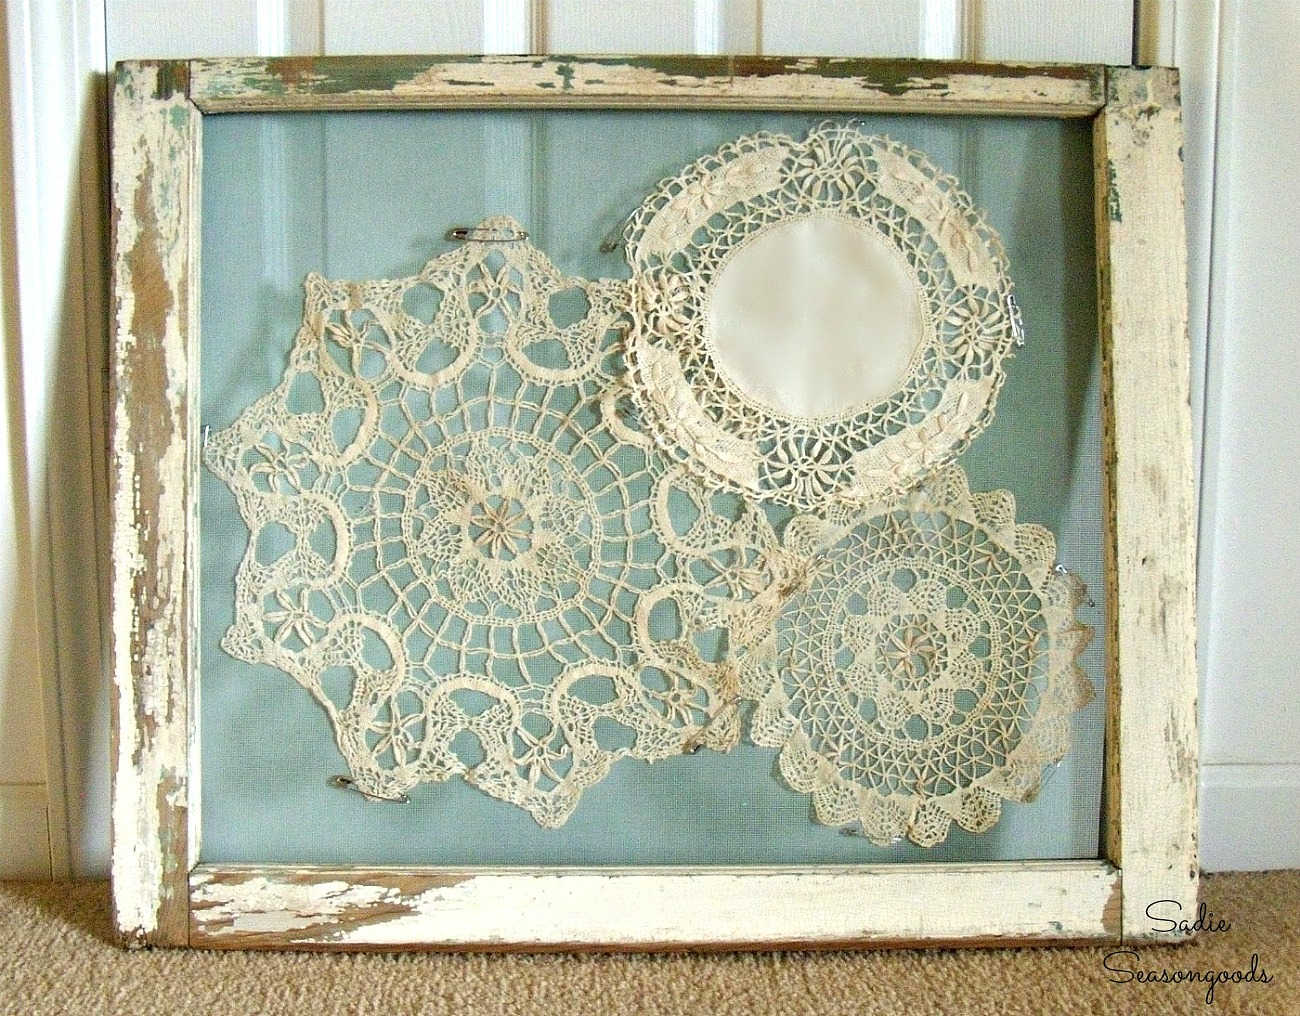 Displaying the vintage doilies with old window frame decorating ideas